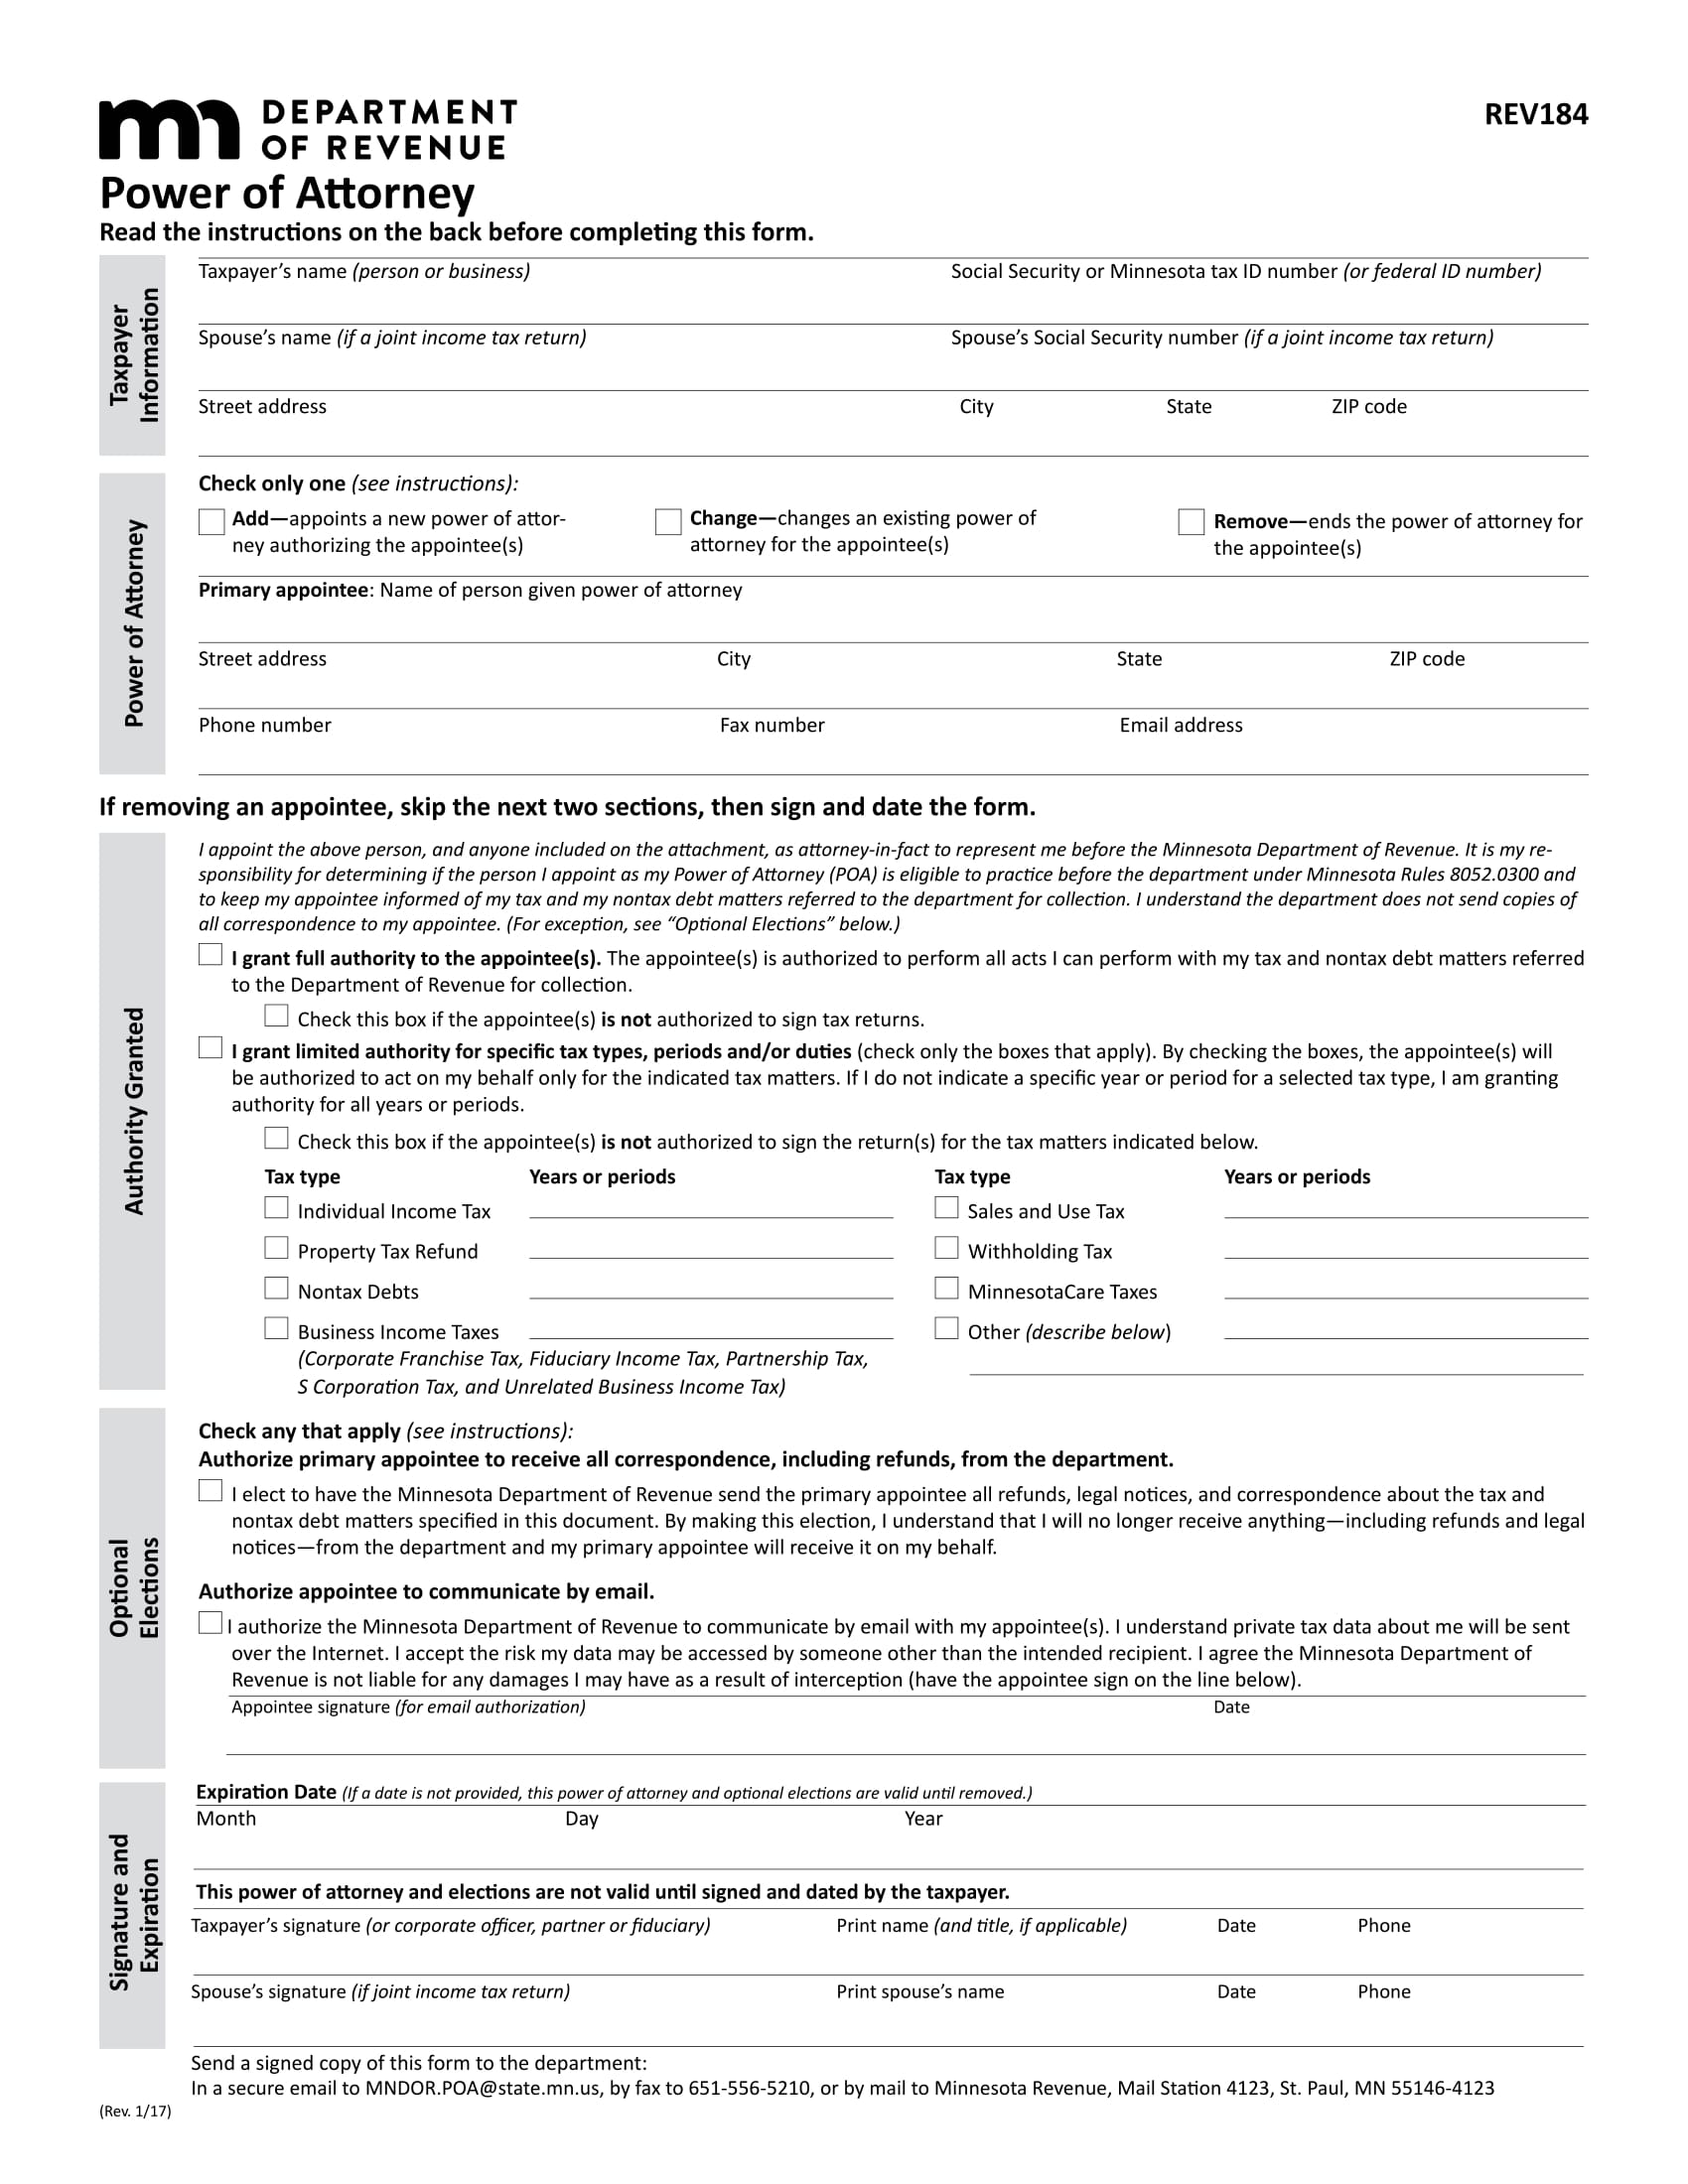 30+ Power of Attorney Forms by State